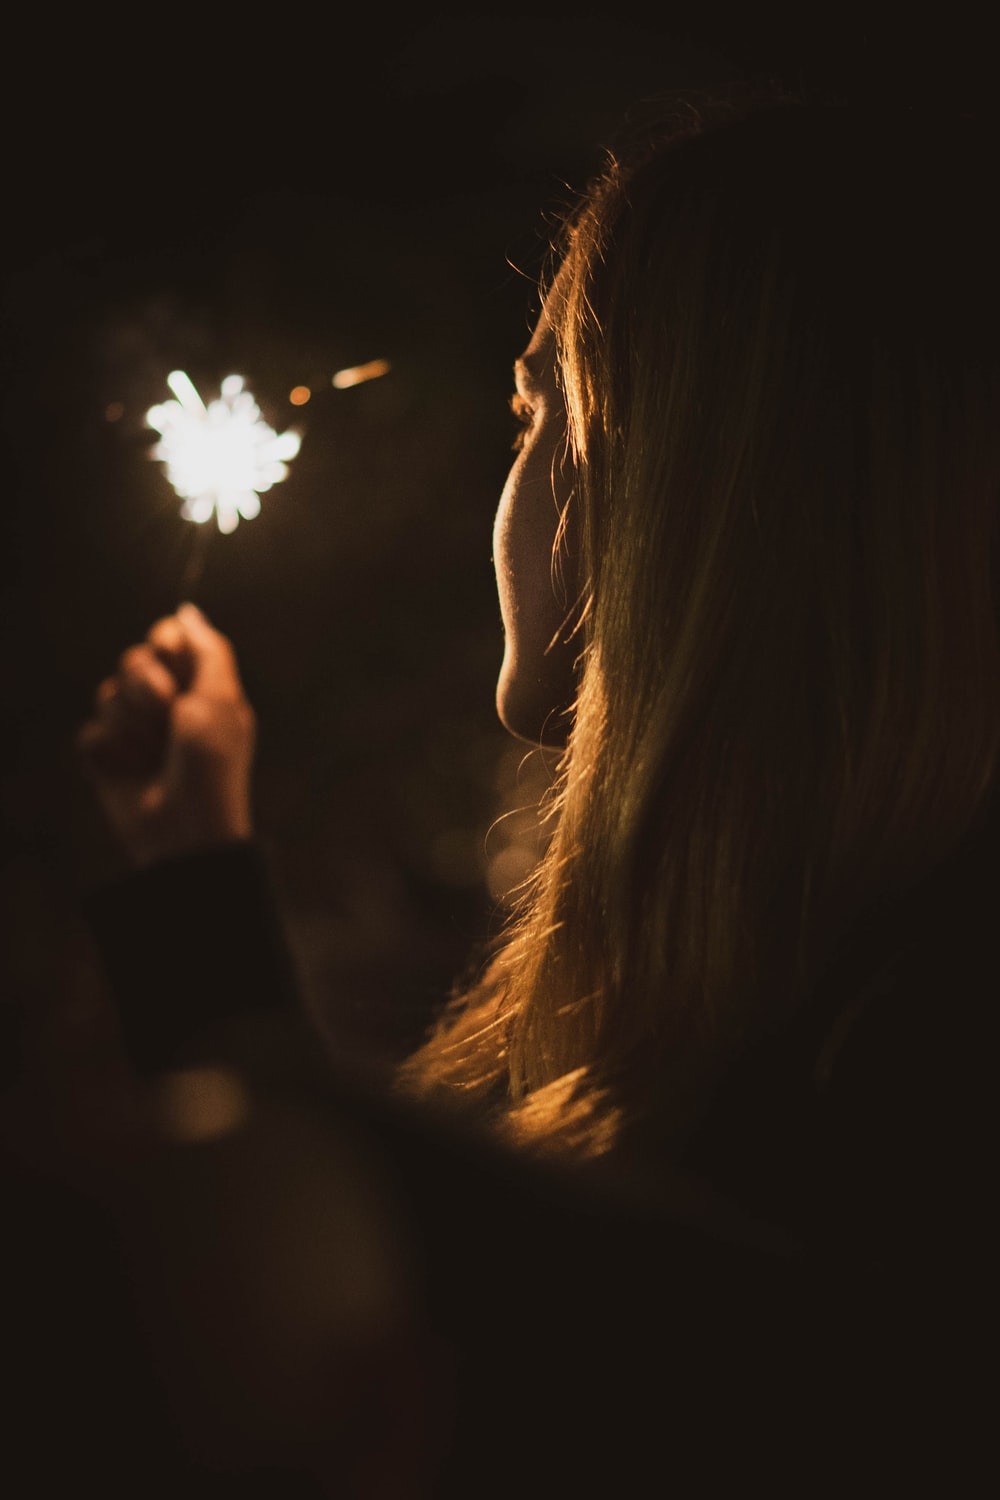 woman holding fireworks close-up photo